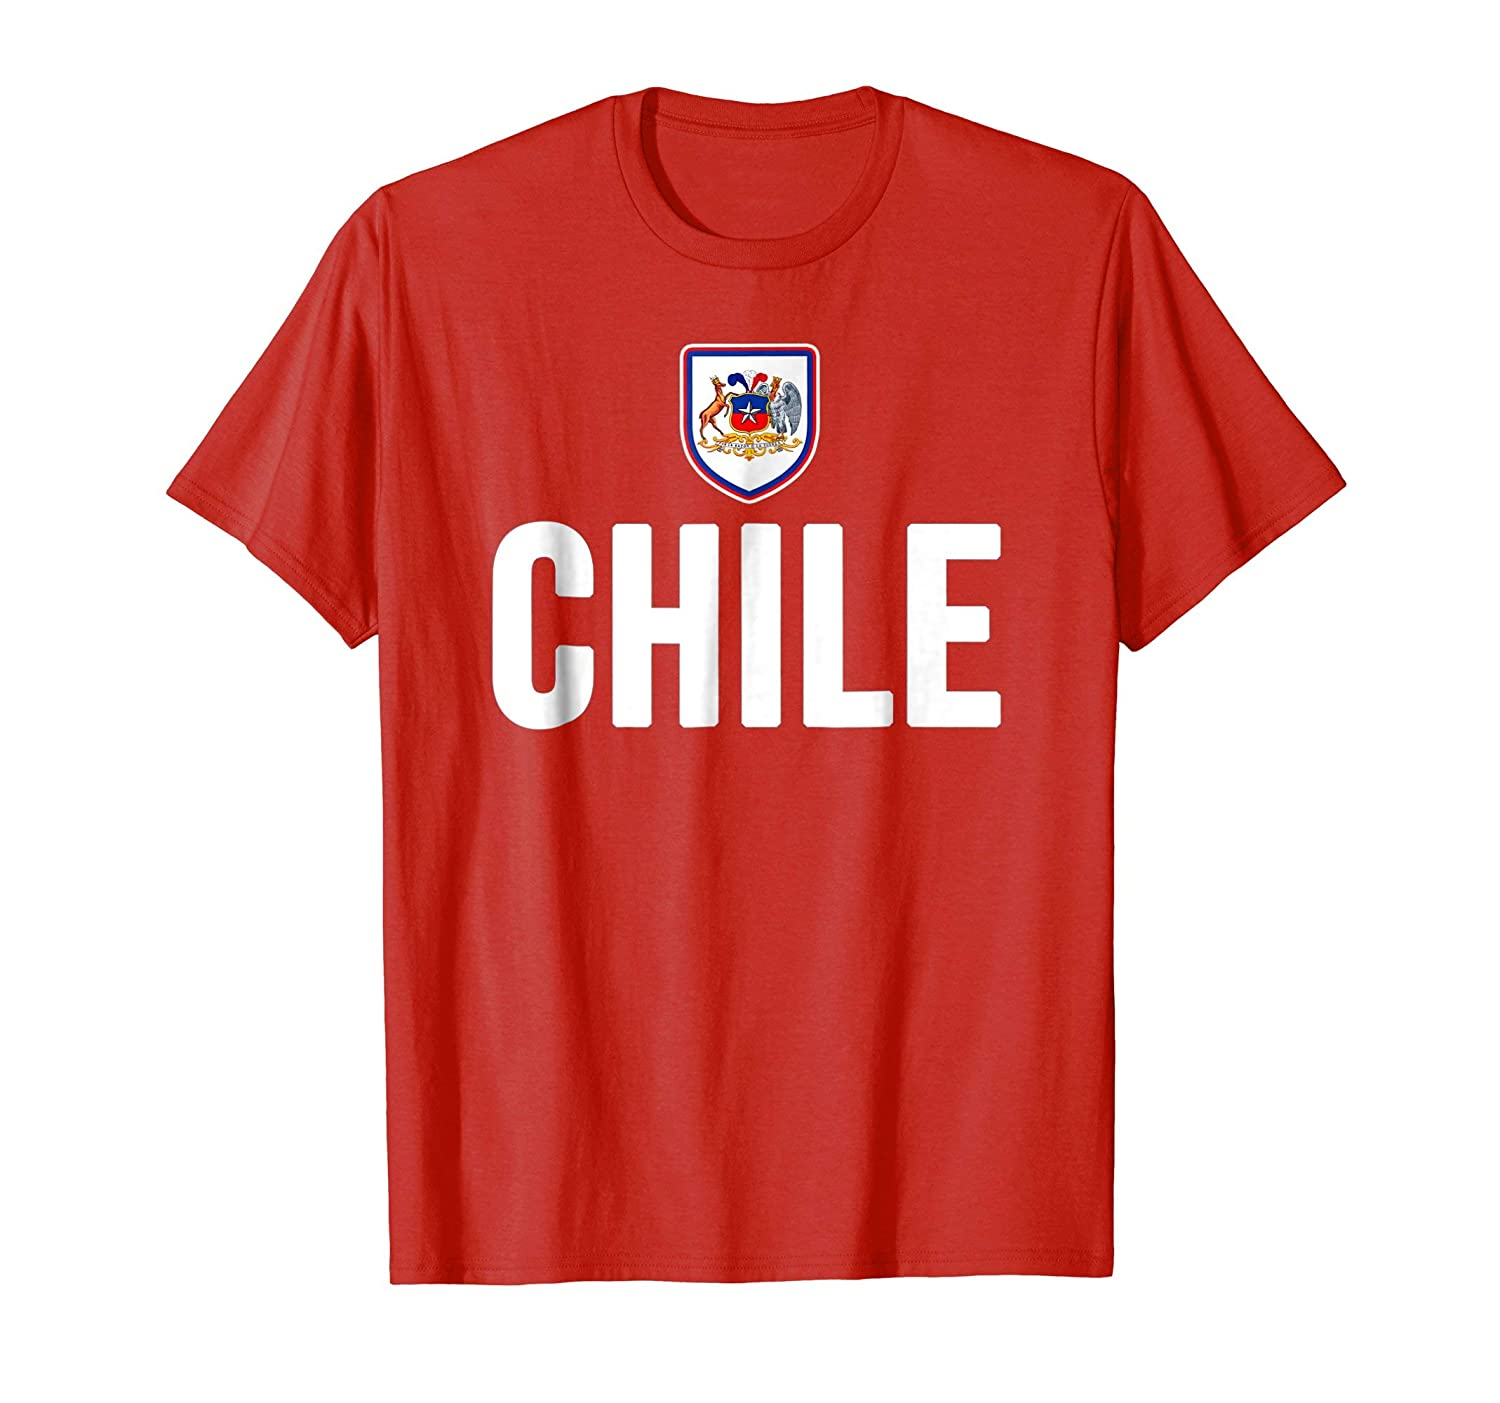 Amazon.com: Chile T-shirt Chilean Flag Soccer Futbol Fan Jersey: Clothing